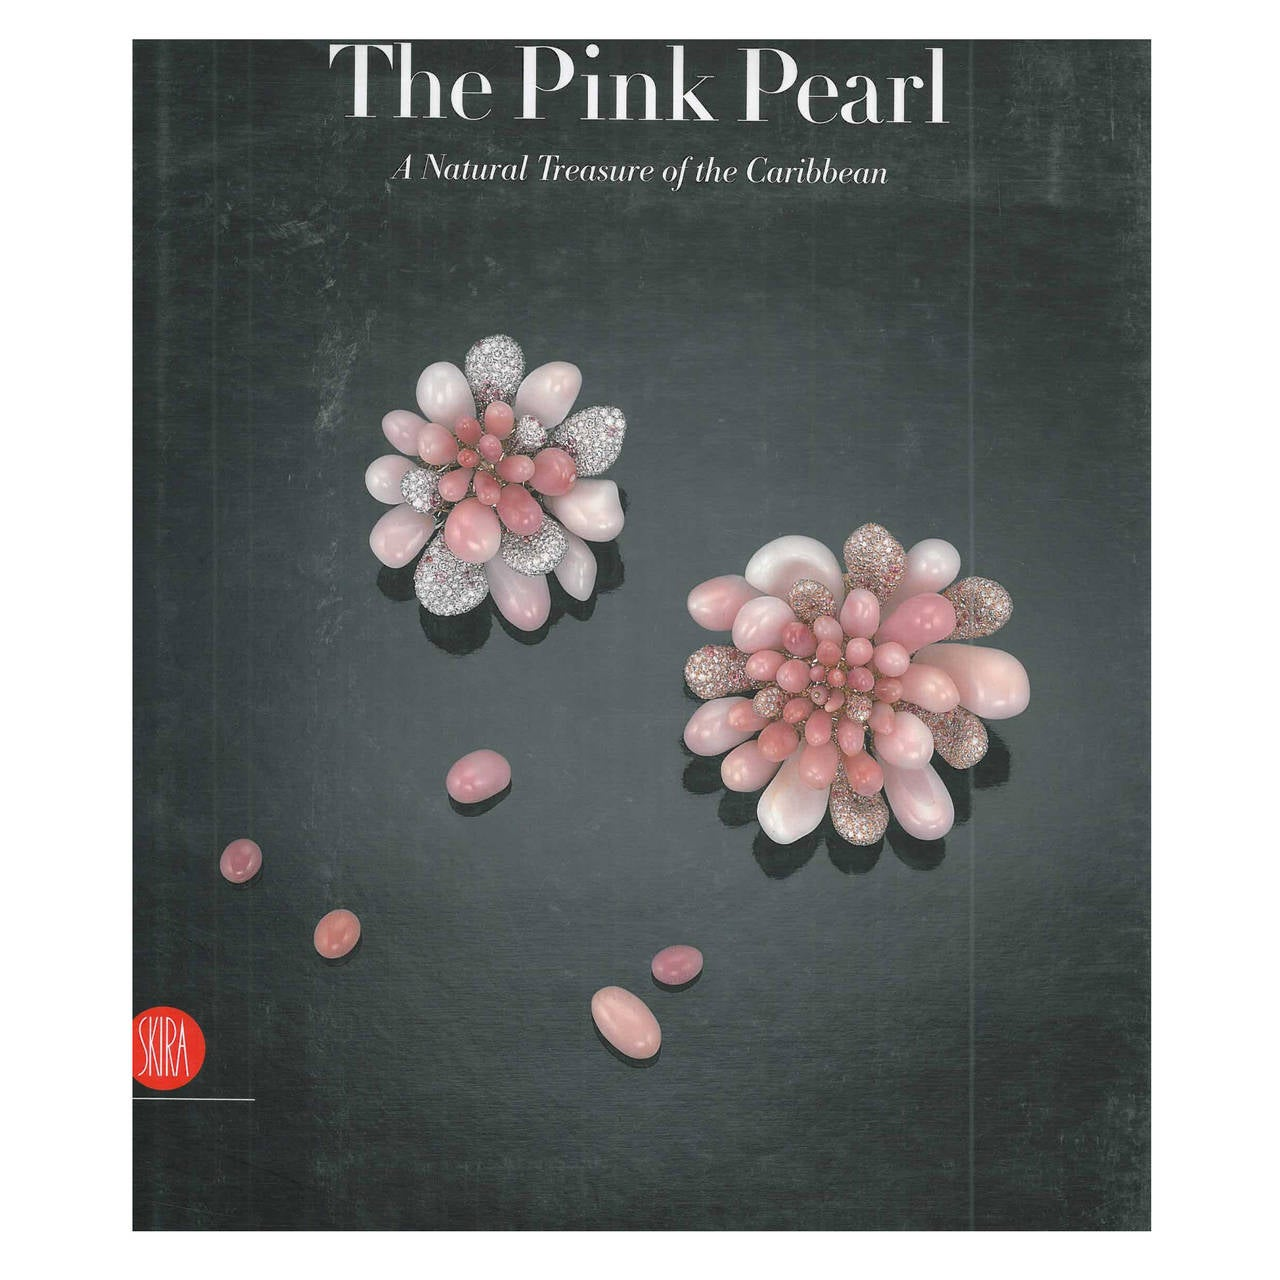 Book of The Pink Pearl